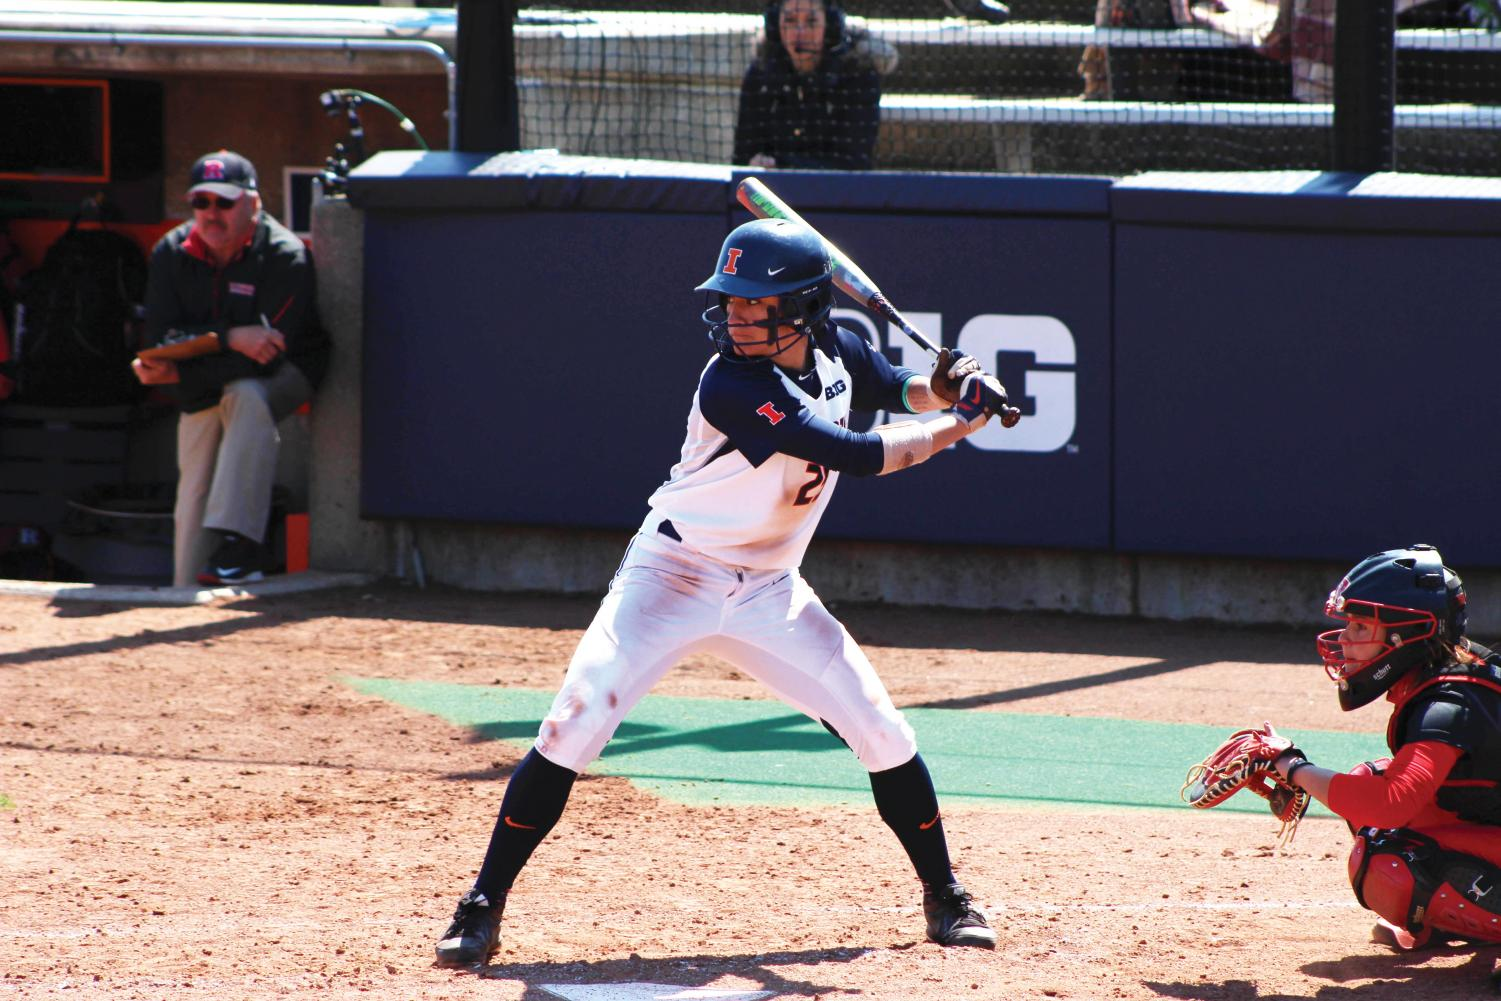 Illinois' Carly Thomas bats in the game against Rutgers at Eichelberger Field on Sunday, Apr. 3, 2016.